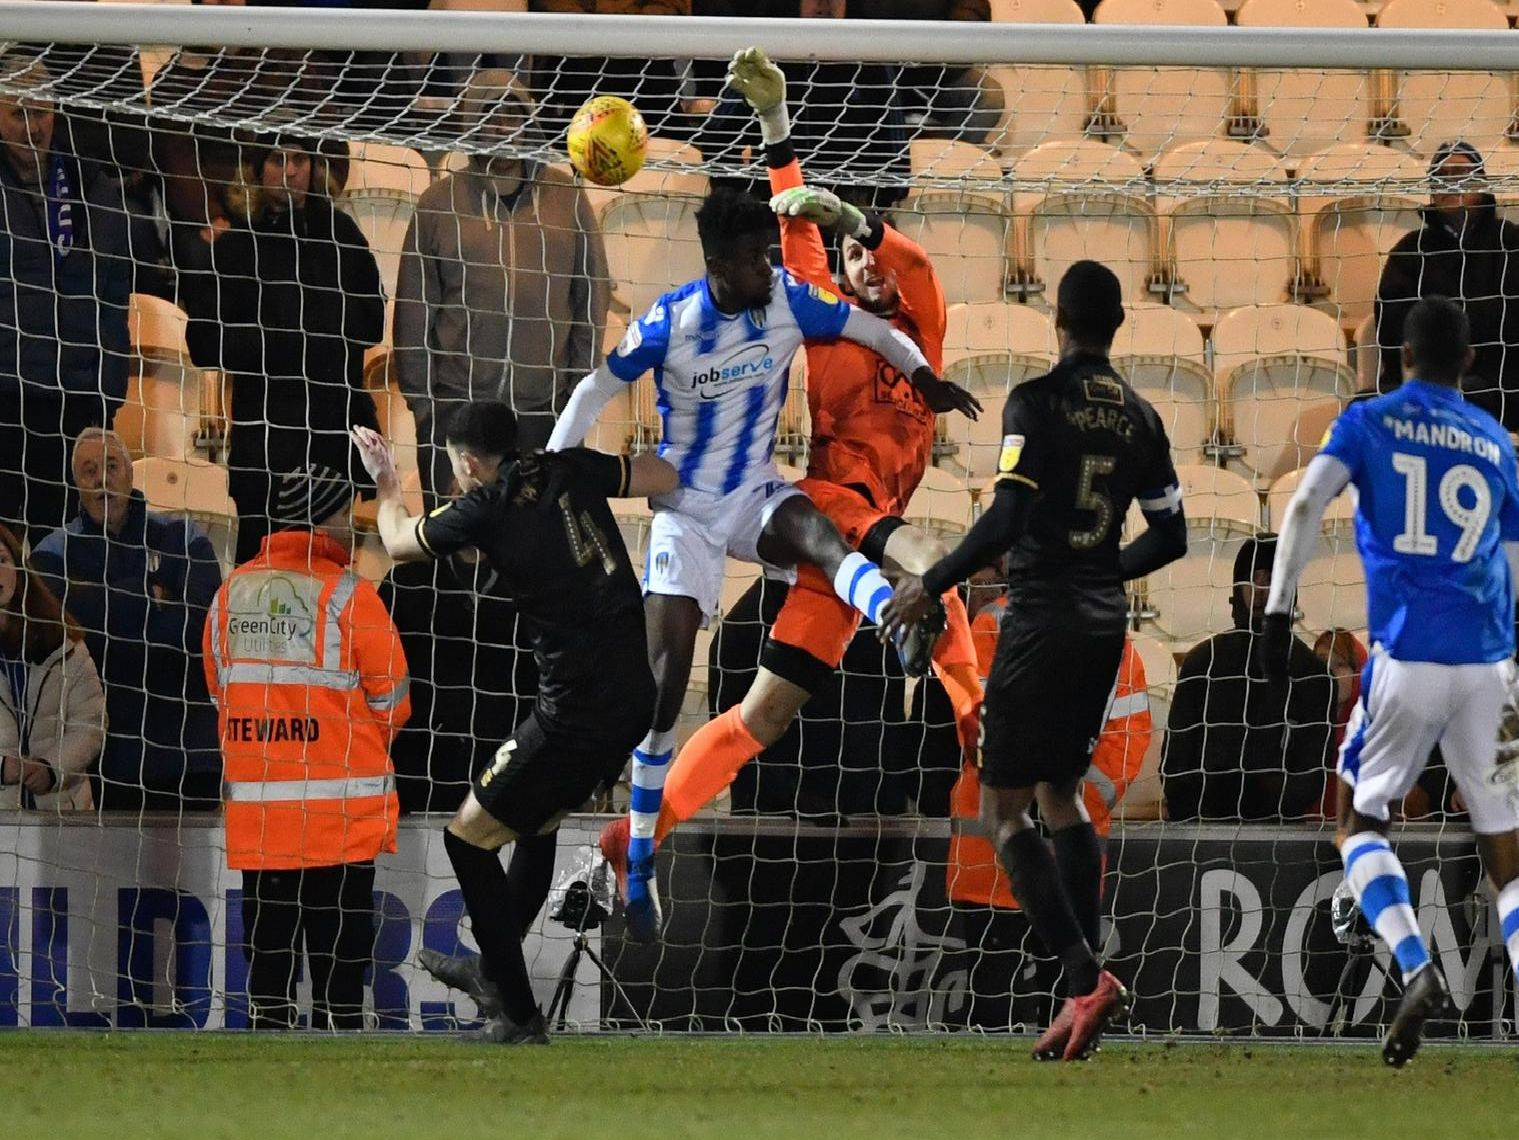 Colchester v Stags action